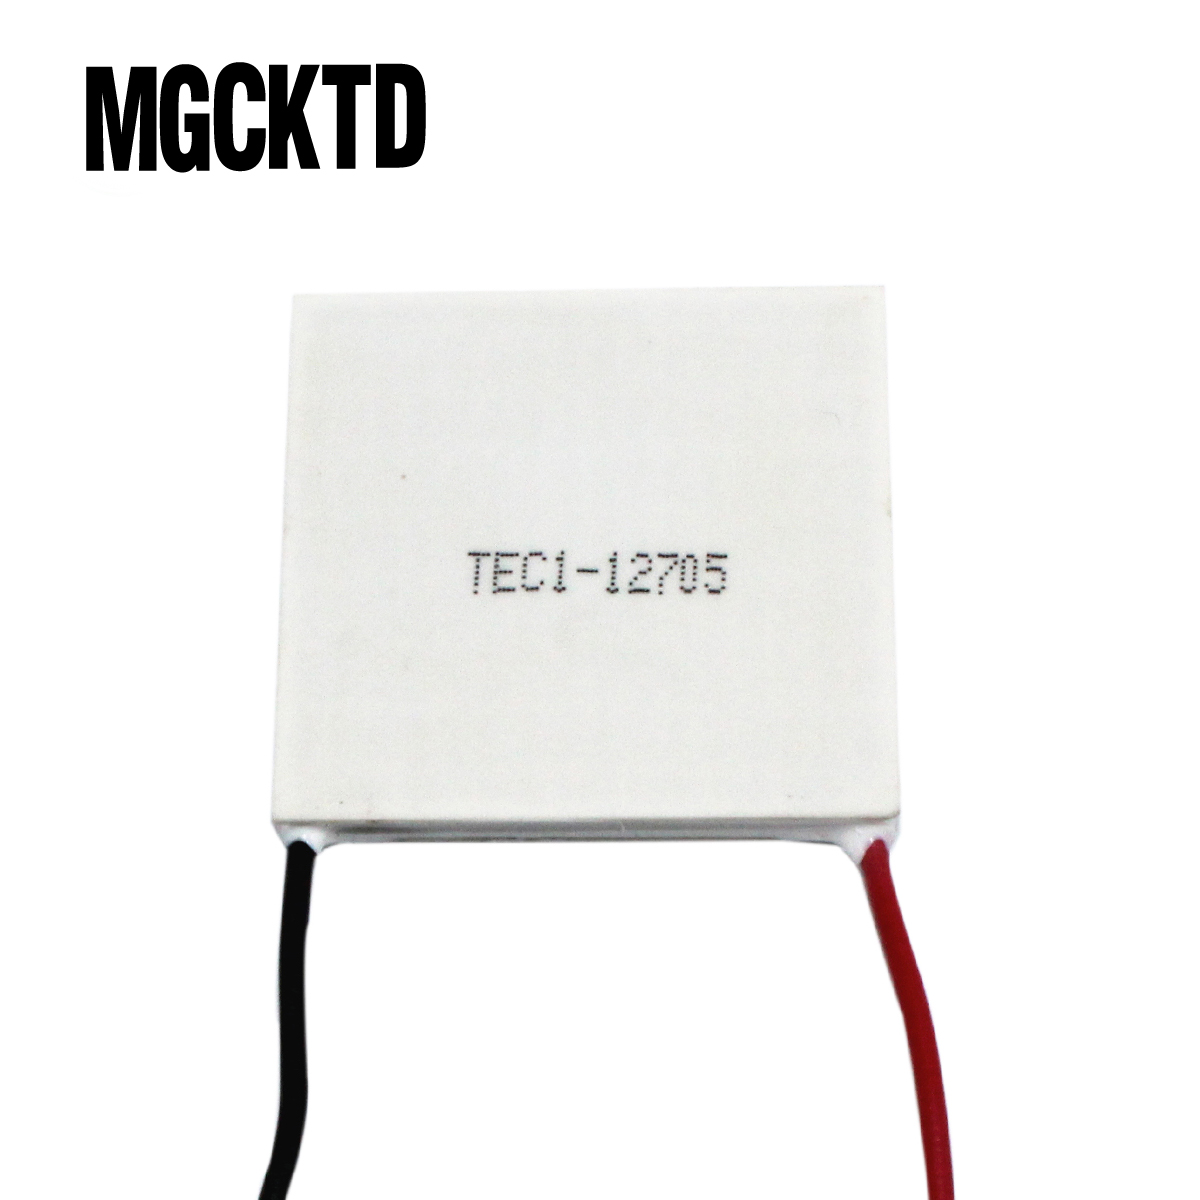 TEC1-12705 Thermoelectric Cooler Peltier 12705 12V 5A Cells TEC12705 Peltier